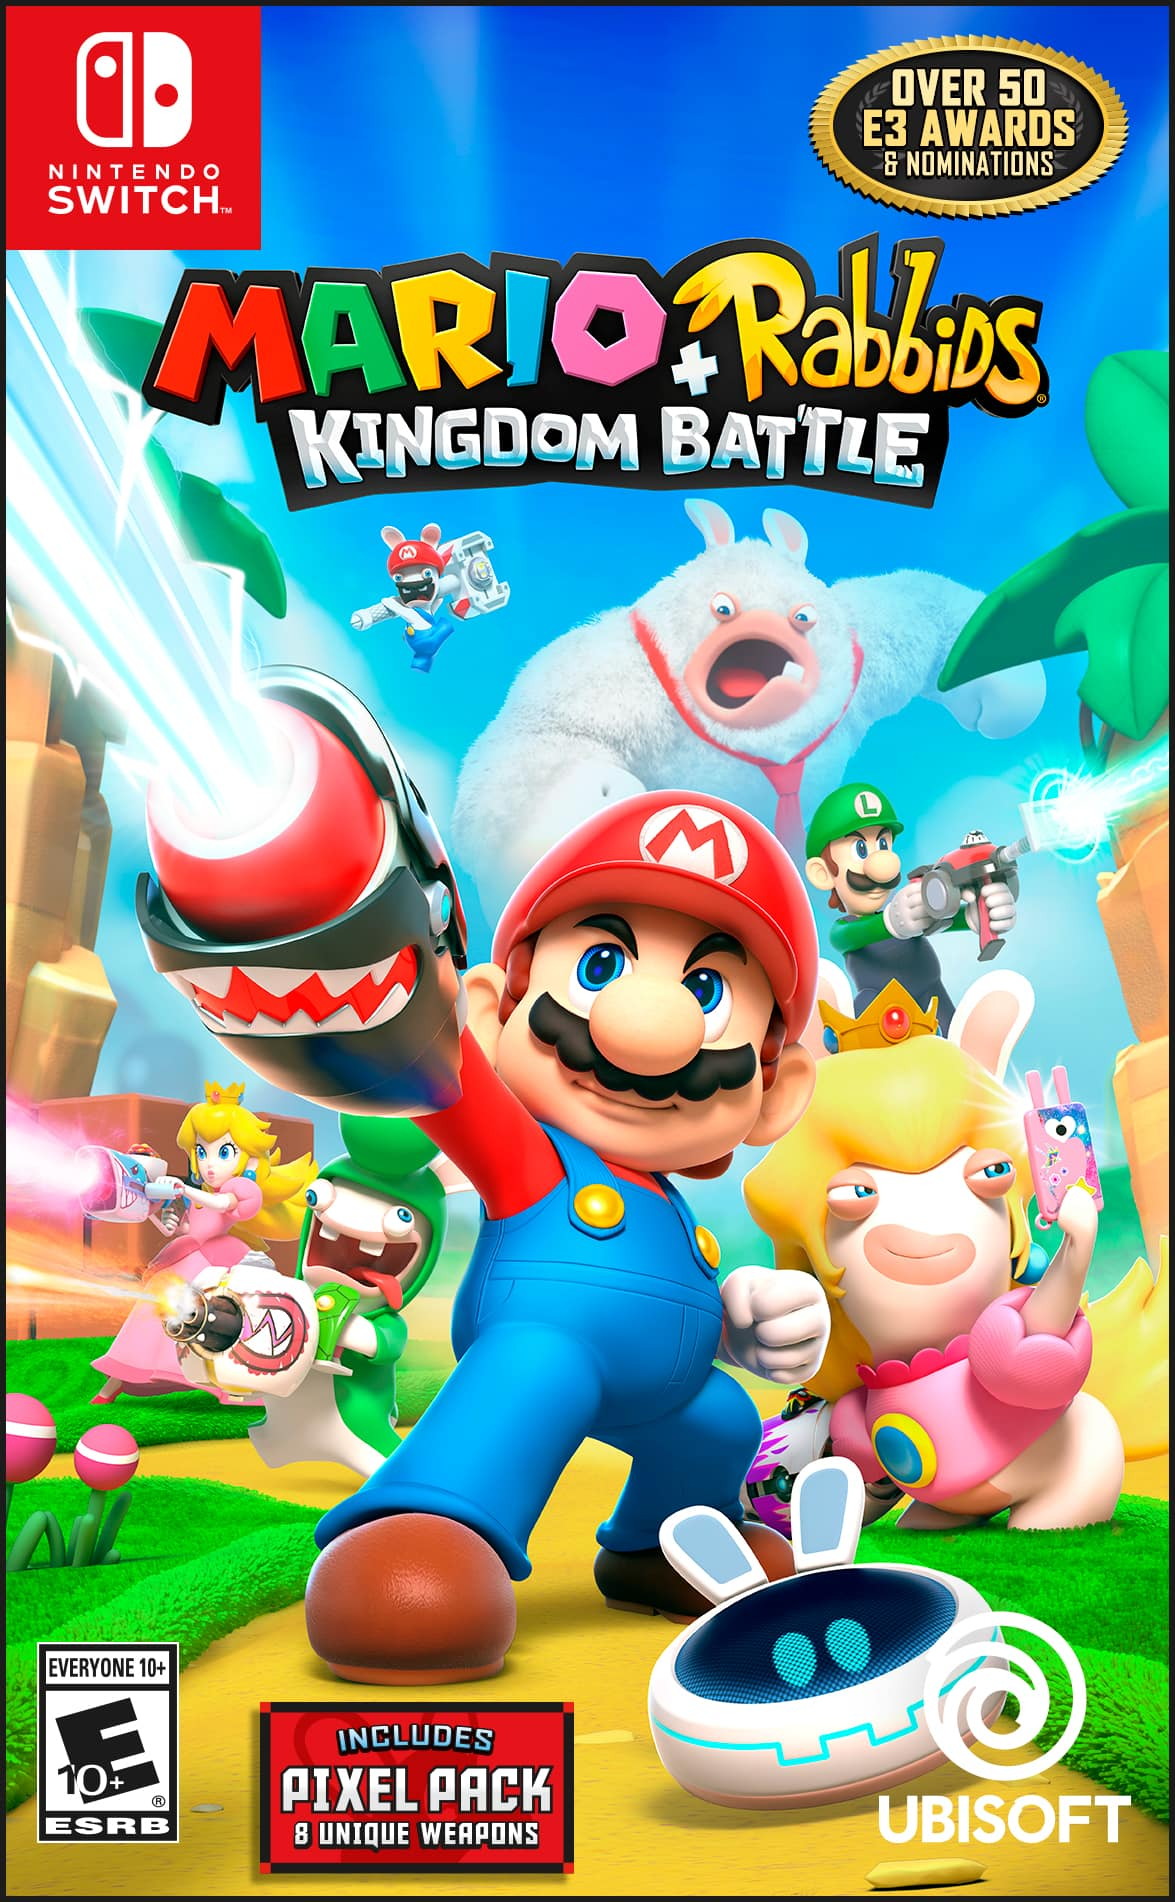 Nintendo Switch - Mario + Rabbids: Kingdom Battle - Video Game - Target $19.99